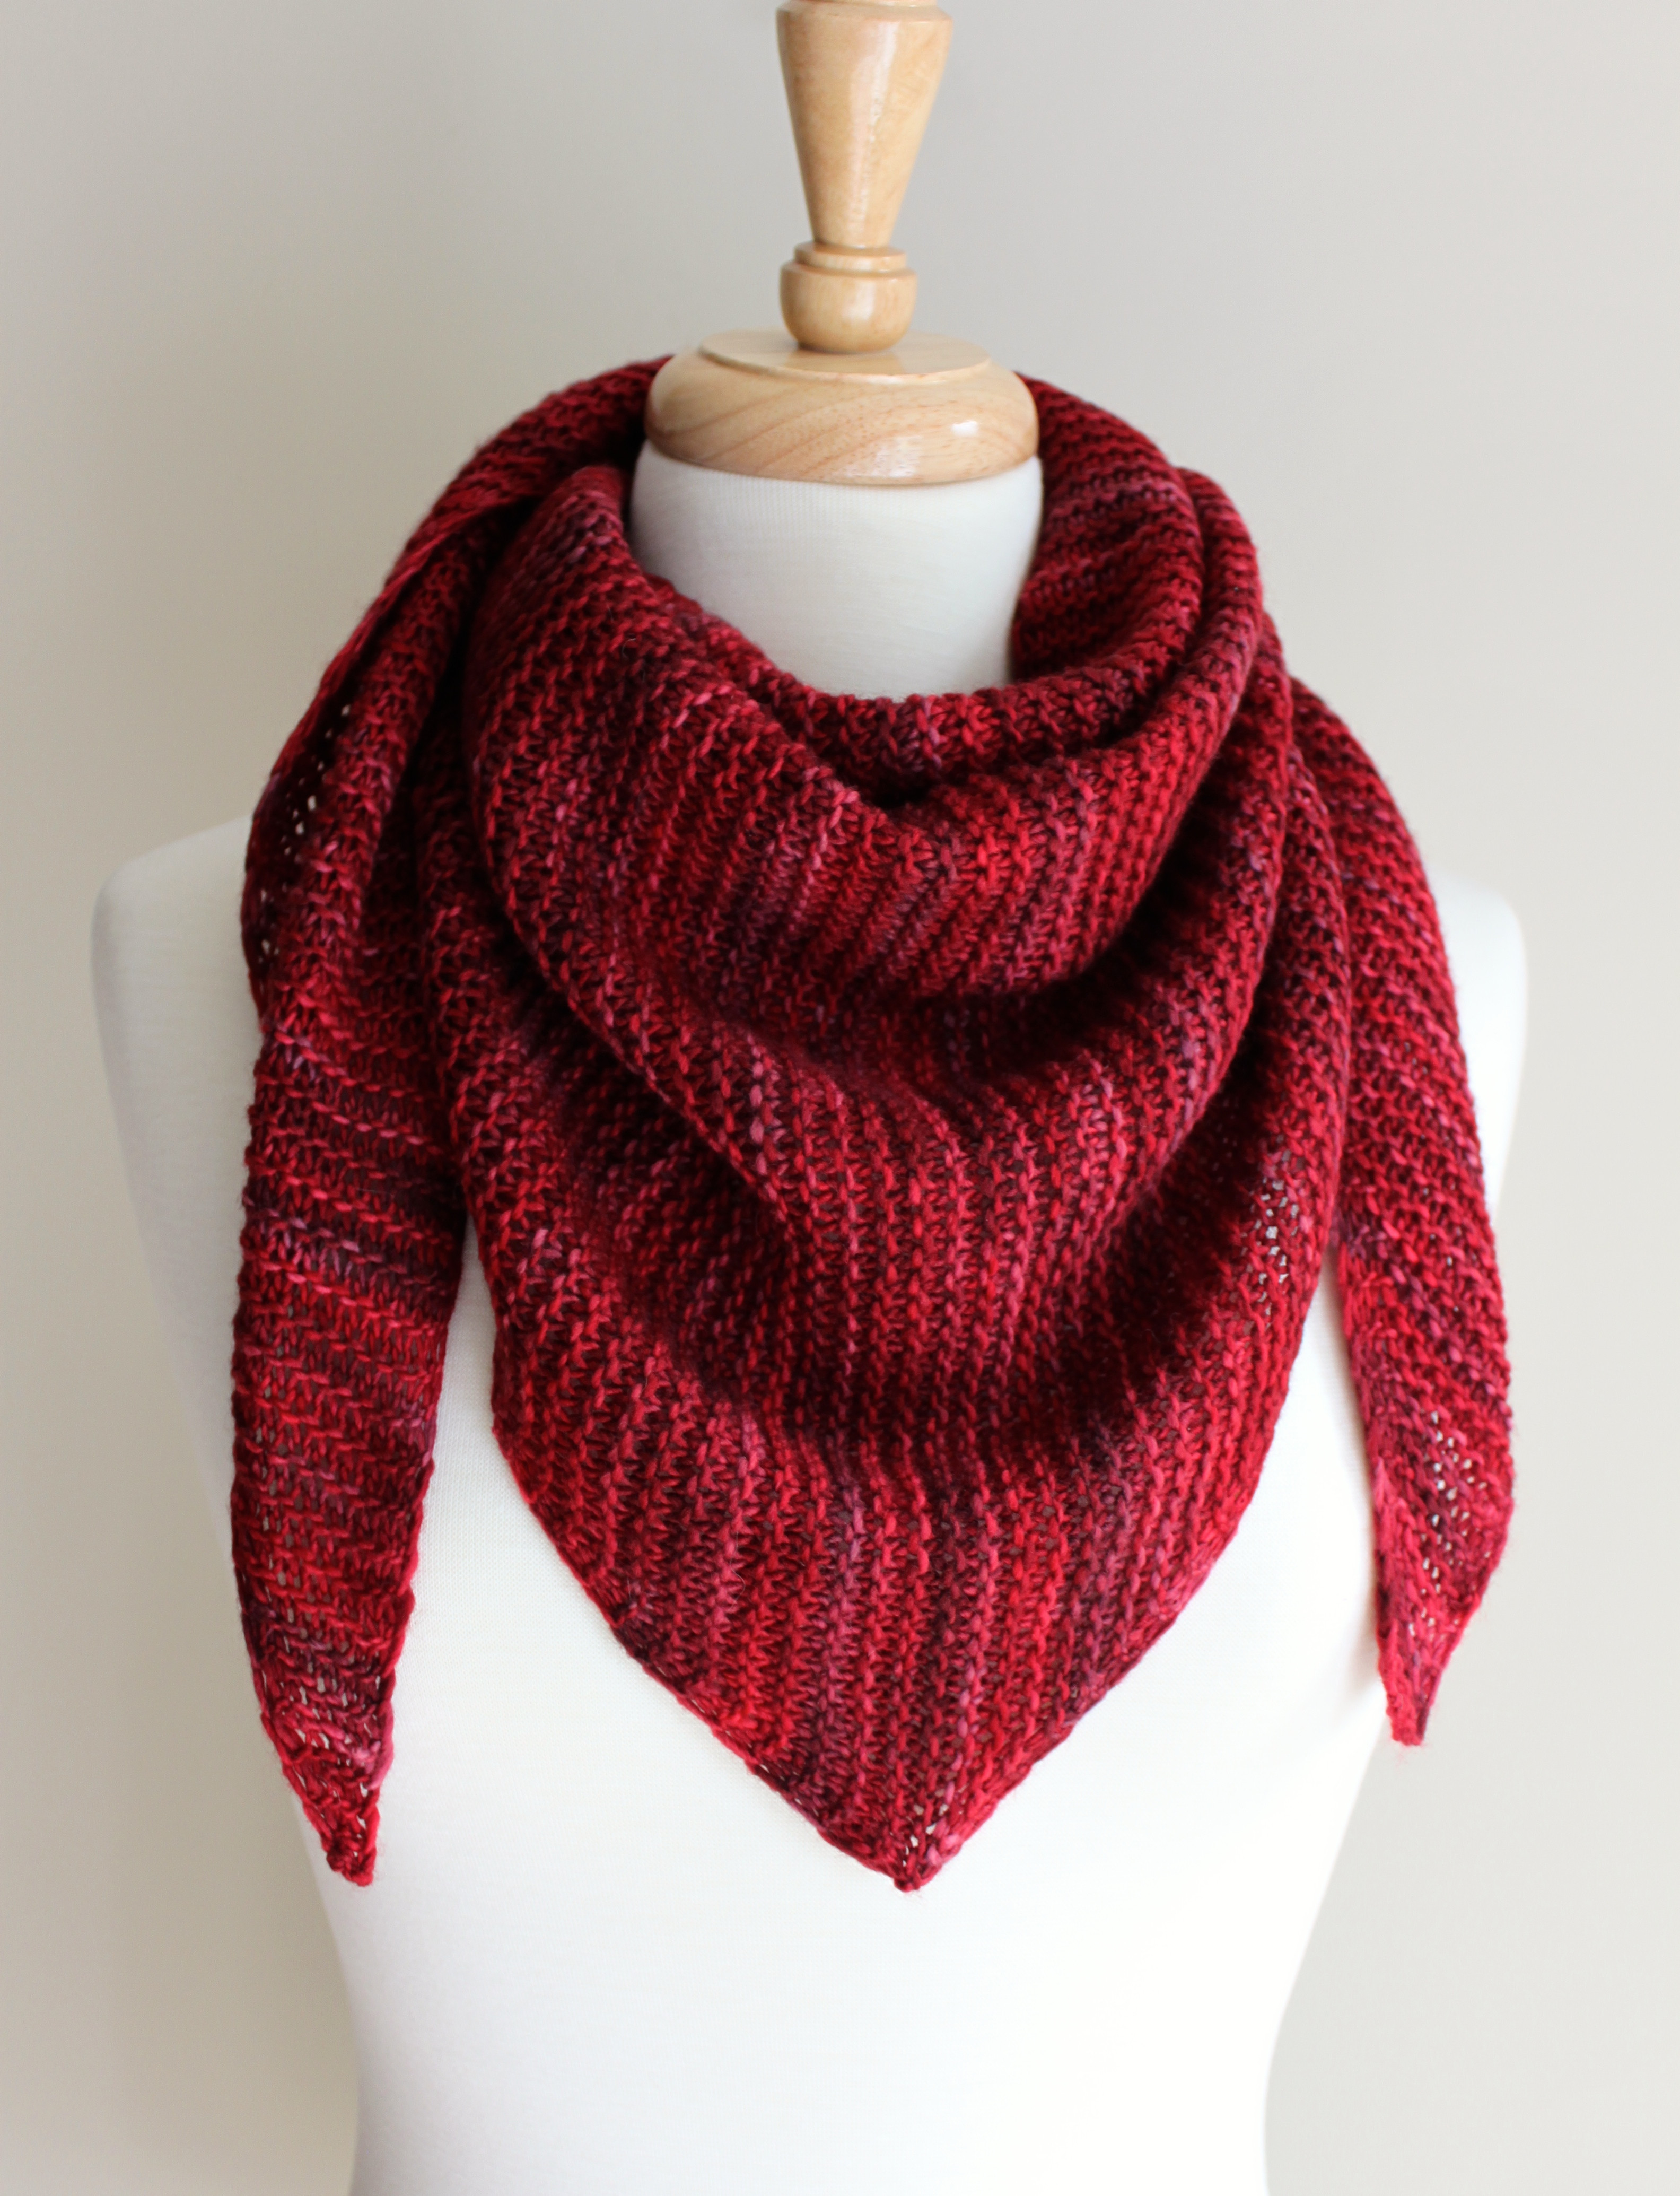 Best Of Free Knitting Patterns Truly Triangular Scarf Leah Designer Knitting Patterns Of Incredible 48 Pics Designer Knitting Patterns